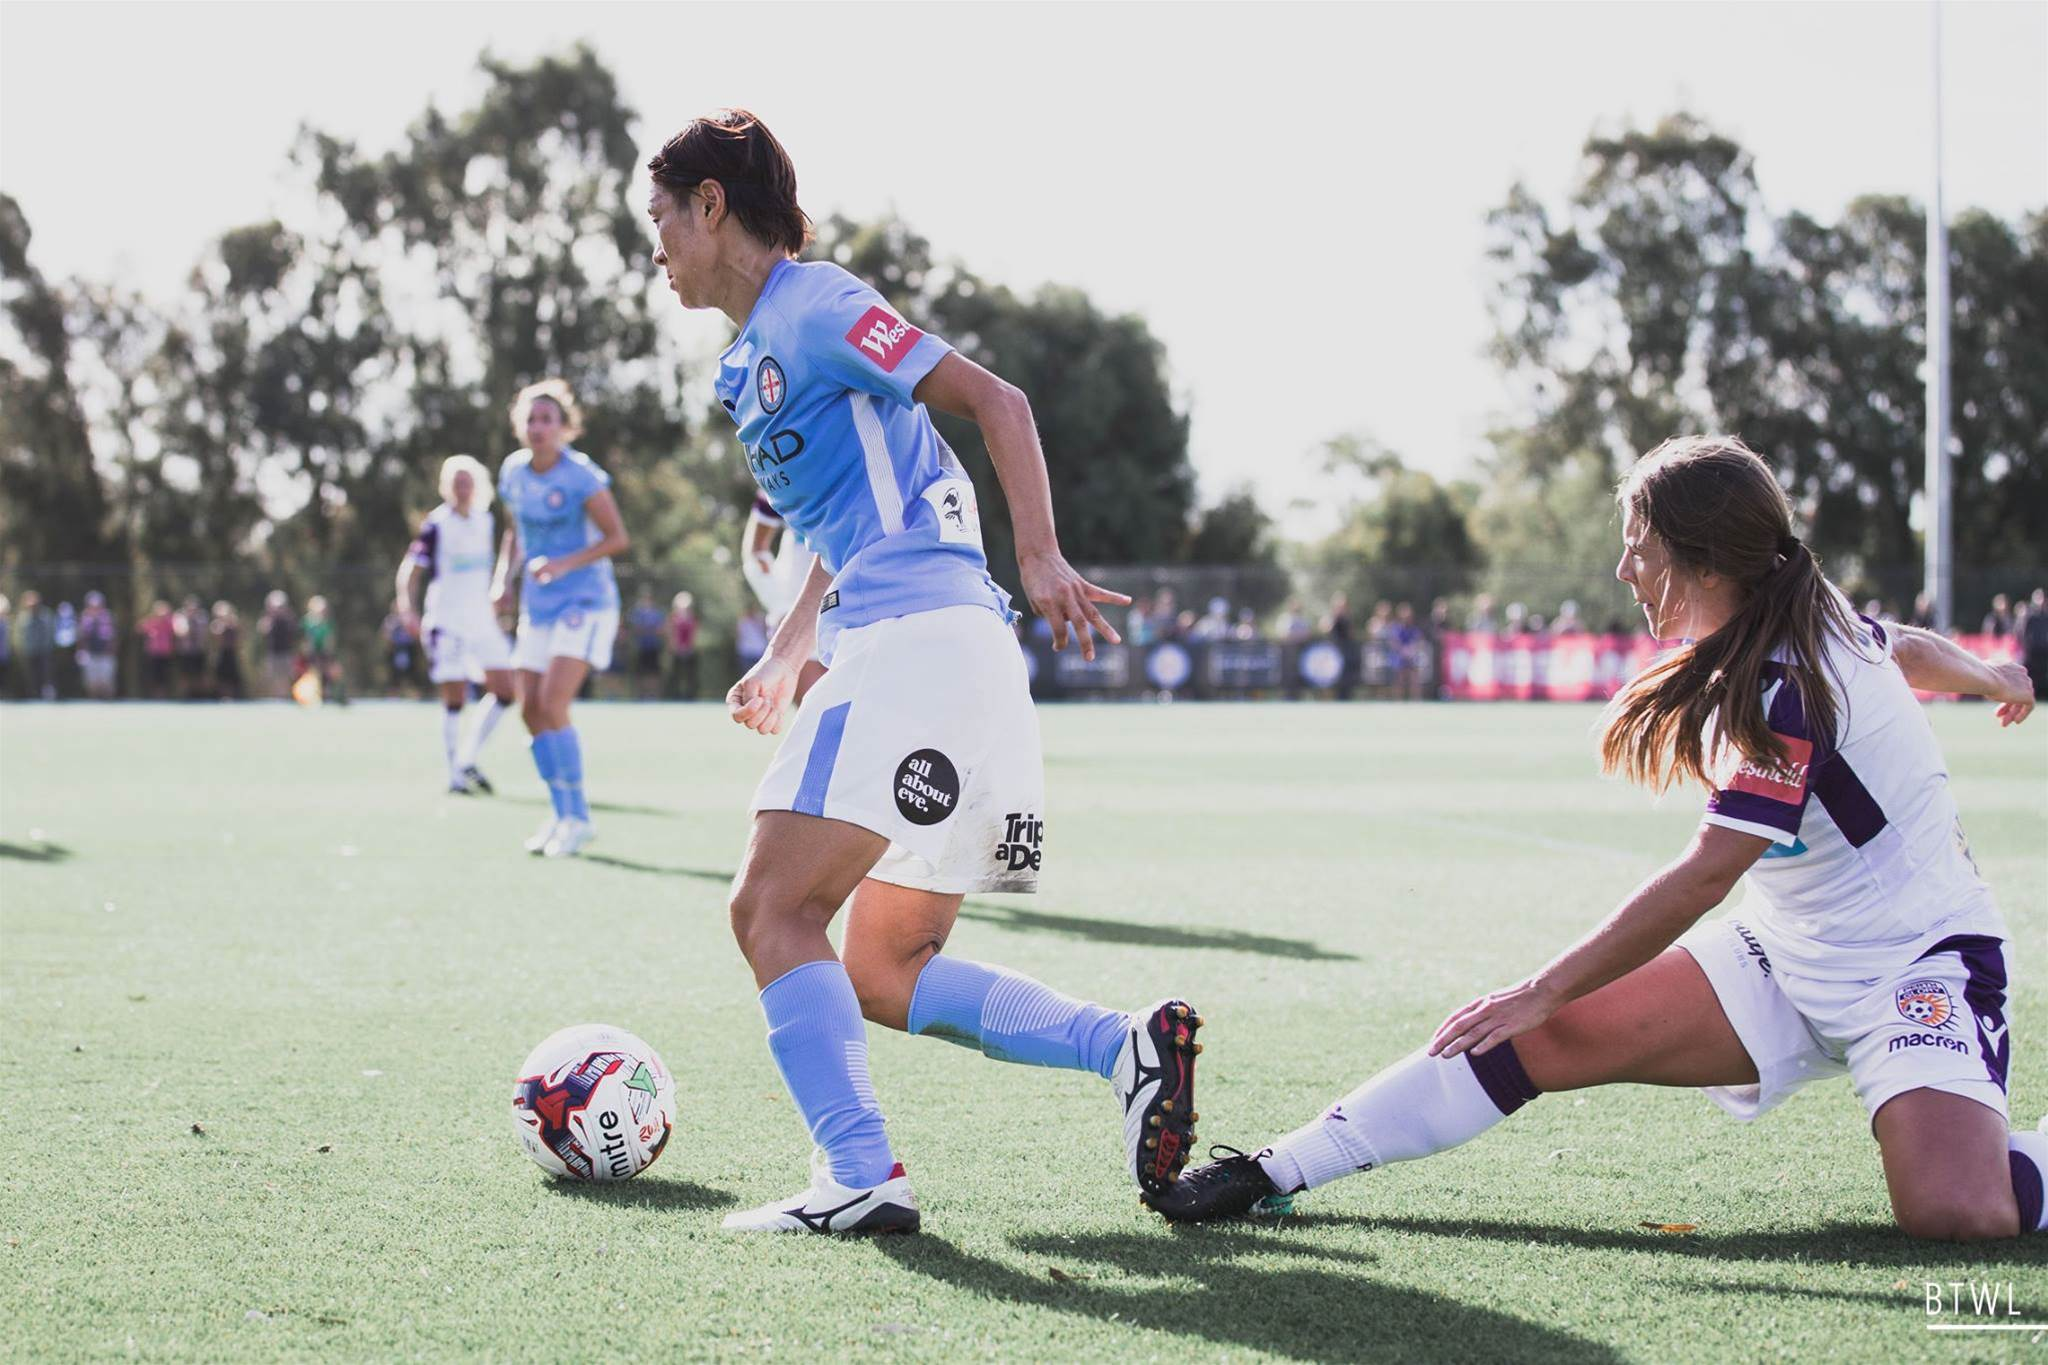 MATCH ANALYSIS: Melbourne City Surprise Perth Glory with a 3-0 win